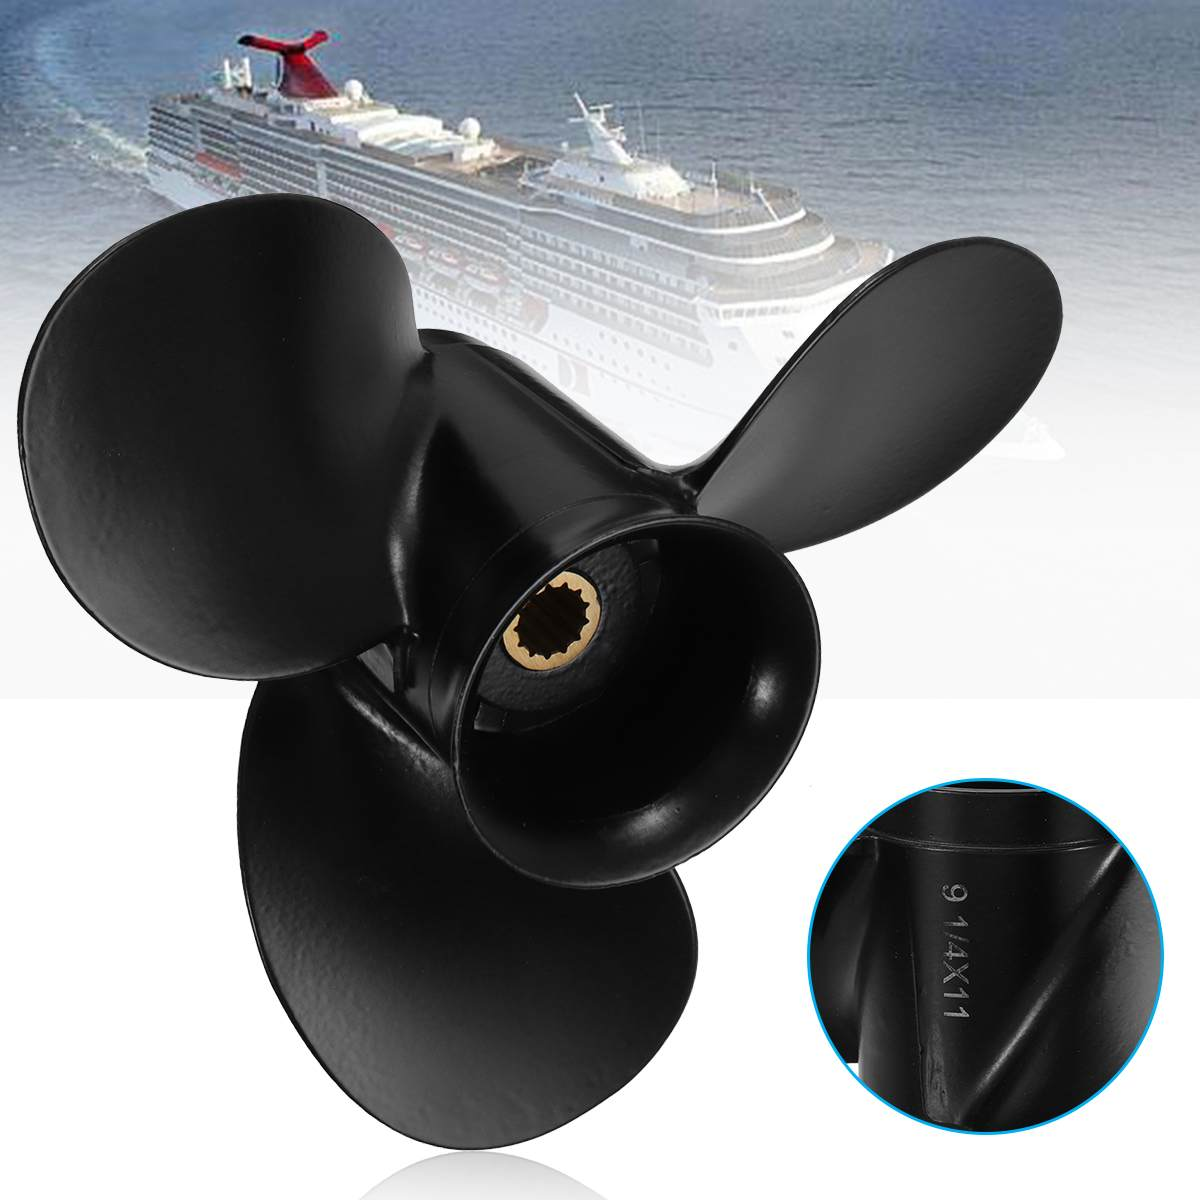 174817 / 778773 Aluminum Alloy 9 1/4 X 11 Outboard Propeller For Johnson/Evinrude/OMC 8-15HP Black 3 Blades 13 Spline Tooth